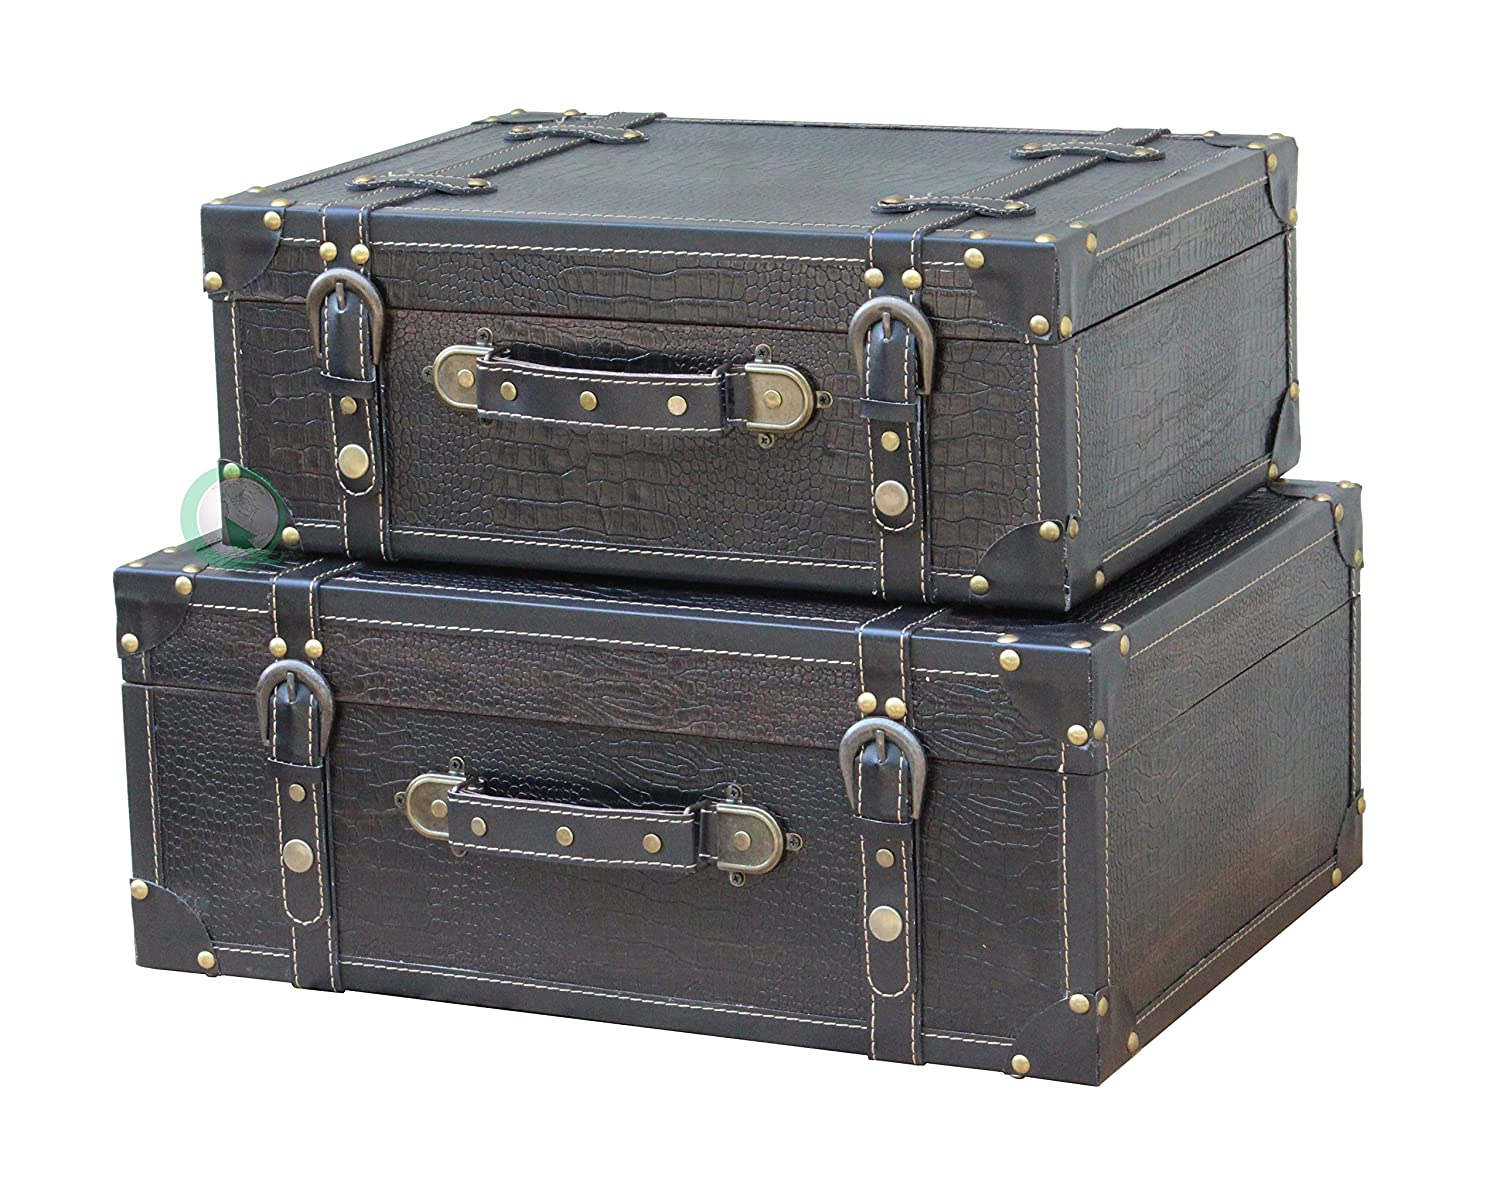 Amazon.com: Vintiquewise(TM) Antique Style Leather Suitcase with ...